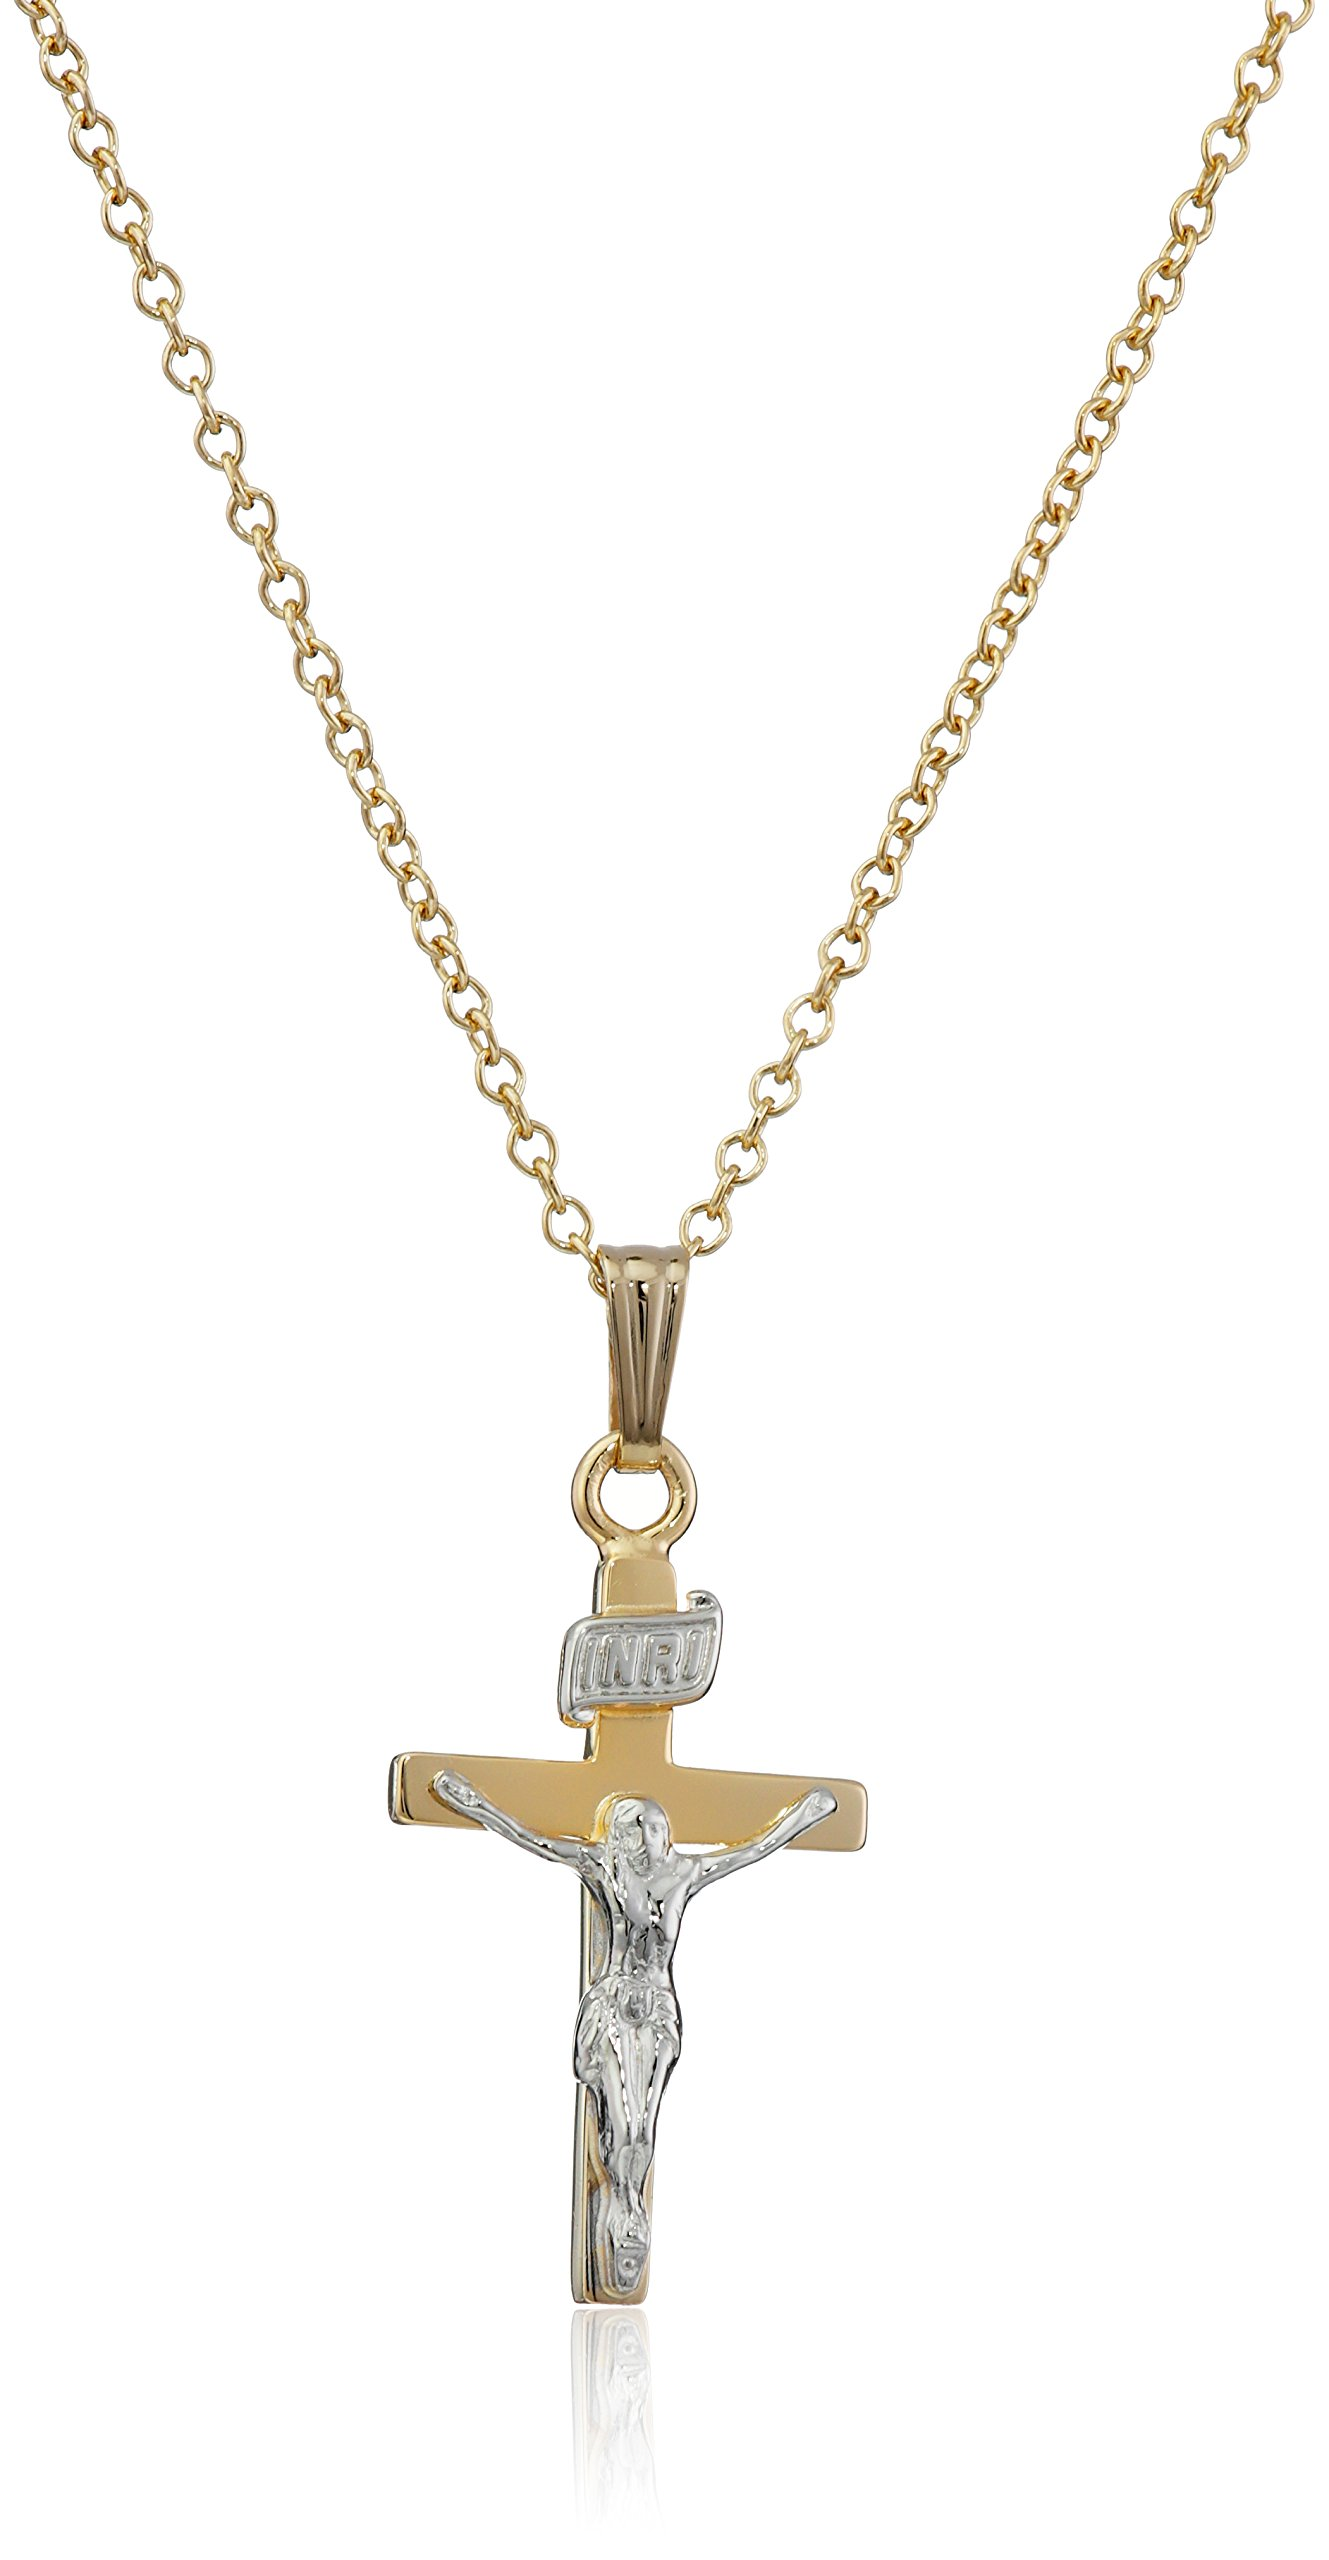 Children's 14k Gold-Filled Two-Tone Crucifix Cross Pendant Necklace, 15'' by Dear to Me (Image #1)